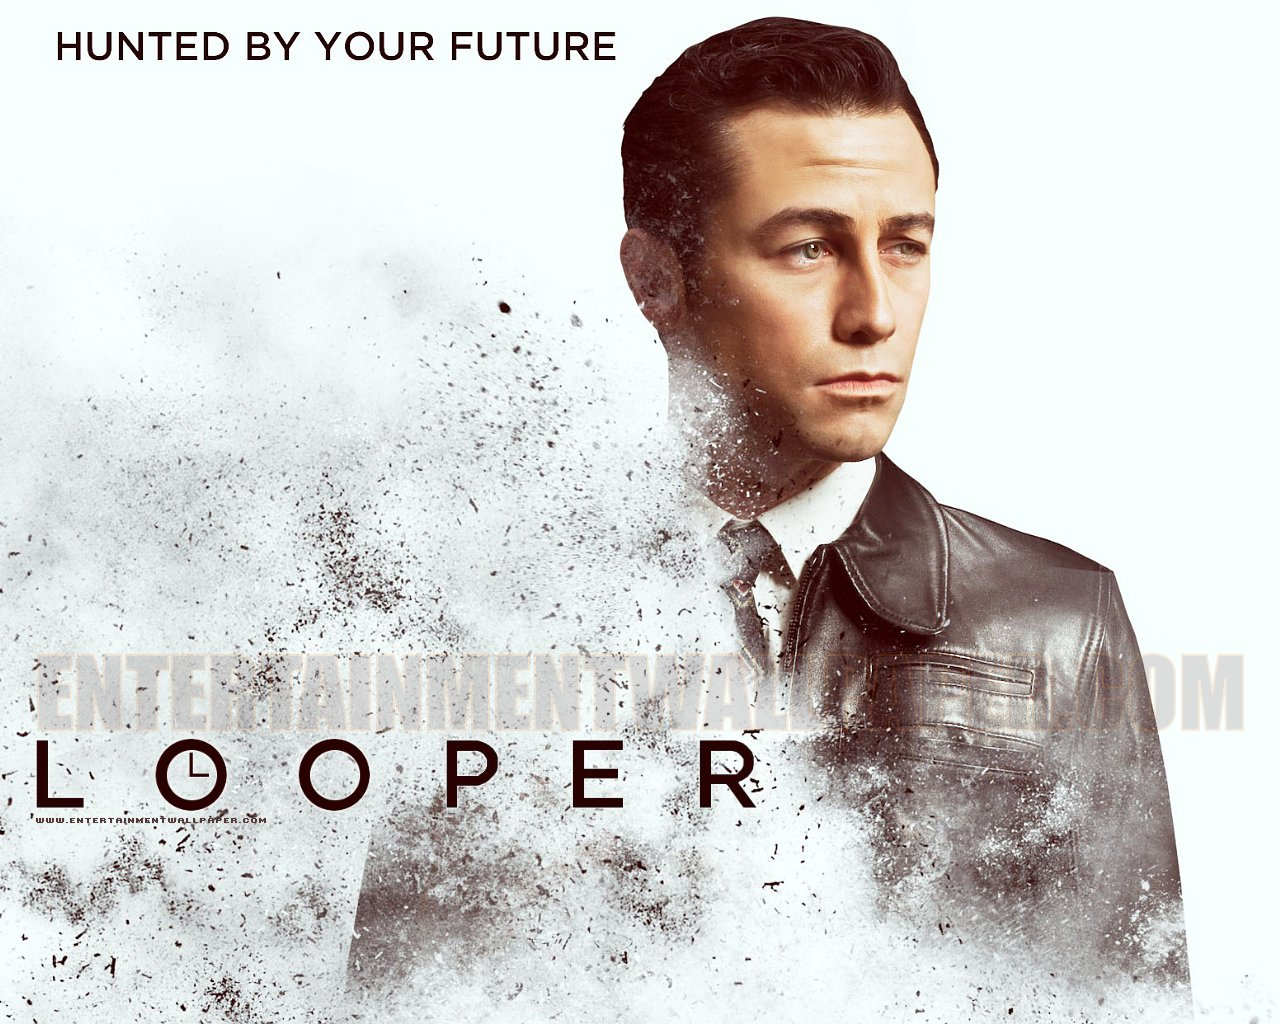 Looper Wallpaper - Original size, download now.